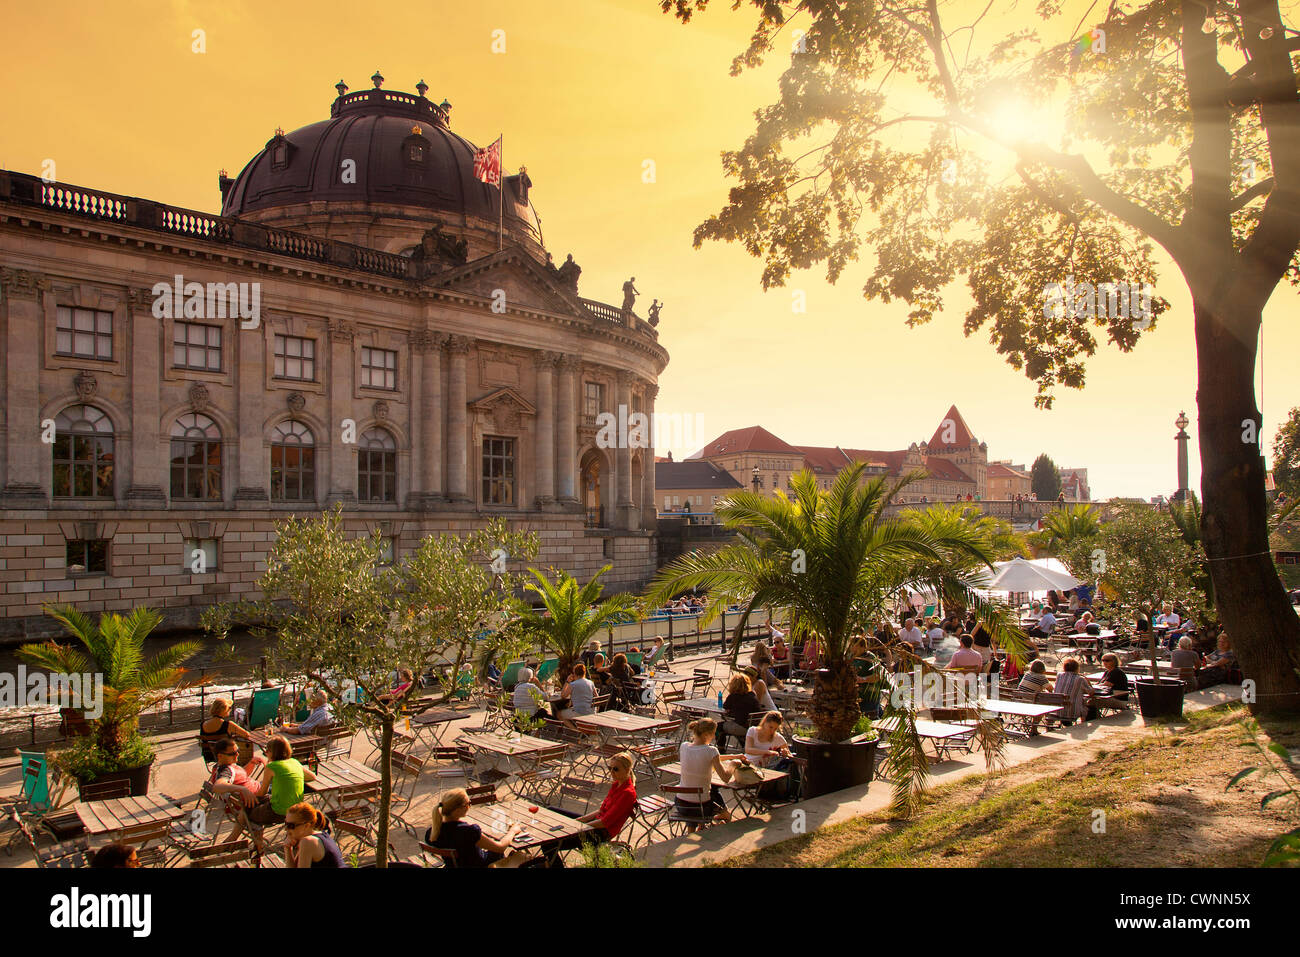 Berlin, Cafe in Riverbank - Stock Image